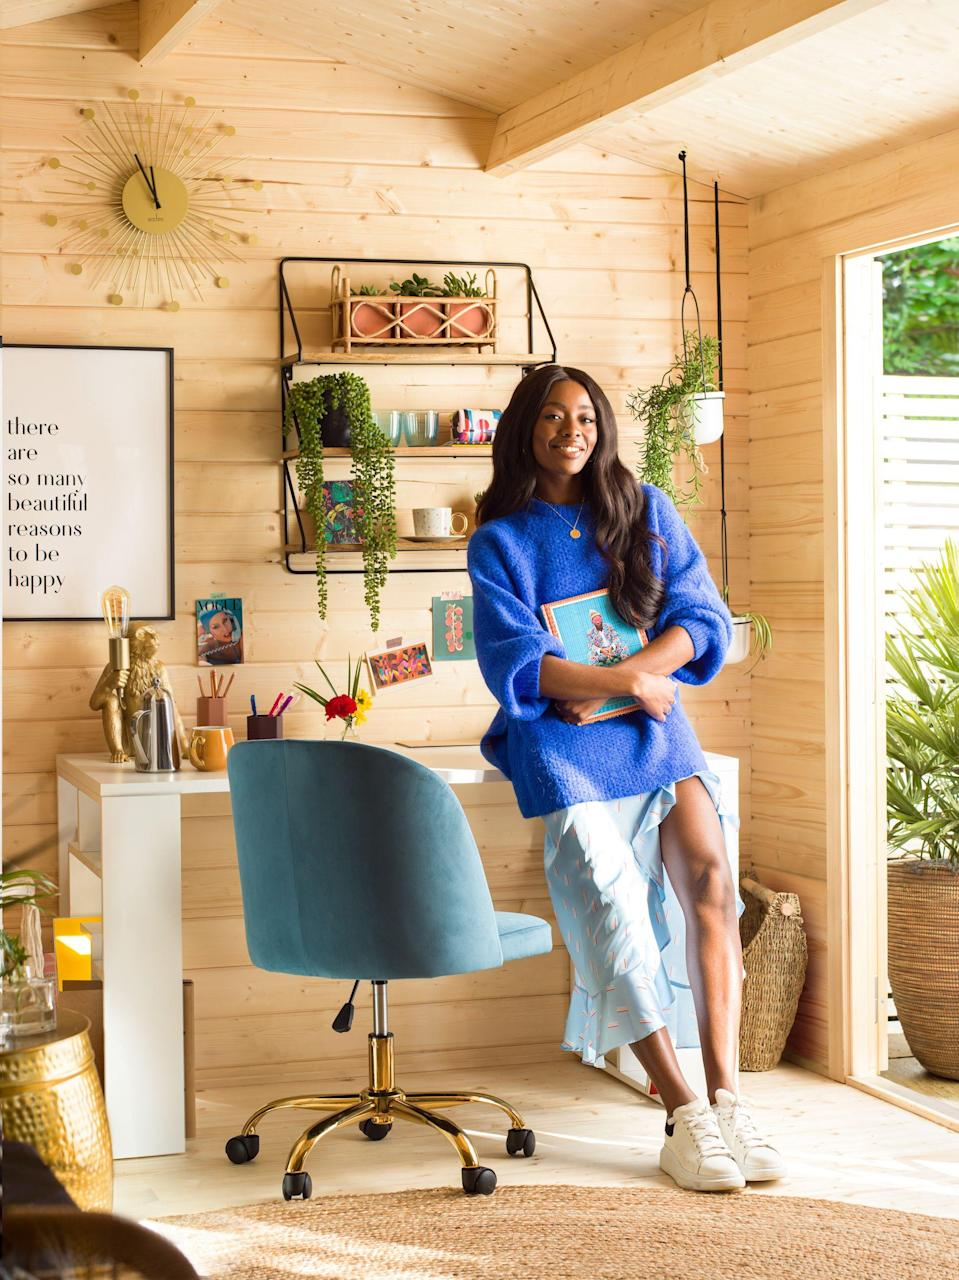 """<p><strong>TV presenter AJ Odudu has extended her outdoor living space with the addition of a fun, flexible and WFH-friendly summer house.</strong></p><p>AJ wanted to be able to use her garden all year round, come rain or shine, and in doing so created the perfect outdoor spot in the garden of her London home. The summer house is divided up into several areas: </p><ol><li><strong>Garden office: </strong>This is the ultimate work from home space with pops of colour, cheerful wall art and decor, display shelving and lots of greenery.</li><li><strong>Self-care corner/ wellness zone: </strong>AJ carved out a relaxing 'me' space in the summer house, perfect for yoga & home workouts, meditation and for indulging in a good book in the reading corner.<br></li><li><strong>Outdoor entertaining: </strong>At the front of the summer house is a bright, colourful, summer-ready lounge set up for 'rule of six' garden entertaining. </li></ol><p>'I have added insulation, electricity and the Internet into the <a href=""""https://go.redirectingat.com?id=127X1599956&url=https%3A%2F%2Fwww.wayfair.co.uk%2Fgarden%2Fpdp%2Fdakota-fields-goldsberry-19-x-10-ft-tongue-and-groove-summer-house-kbdx1043.html&sref=https%3A%2F%2Fwww.housebeautiful.com%2Fuk%2Fgarden%2Fg36462362%2Faj-odudu-garden-summer-house%2F"""" rel=""""nofollow noopener"""" target=""""_blank"""" data-ylk=""""slk:summer house"""" class=""""link rapid-noclick-resp"""">summer house</a> so that I can maximise its use all year round,' explains AJ, who revamped her outdoor space with the help of design experts at <a href=""""https://go.redirectingat.com?id=127X1599956&url=https%3A%2F%2Fwww.wayfair.co.uk%2F&sref=https%3A%2F%2Fwww.housebeautiful.com%2Fuk%2Fgarden%2Fg36462362%2Faj-odudu-garden-summer-house%2F"""" rel=""""nofollow noopener"""" target=""""_blank"""" data-ylk=""""slk:Wayfair"""" class=""""link rapid-noclick-resp"""">Wayfair</a>. 'It's a really versatile space, perfect for zoom meetings, workouts or chilling with a drink in the seating area, which can be adapted for 2021 and beyond.'</"""